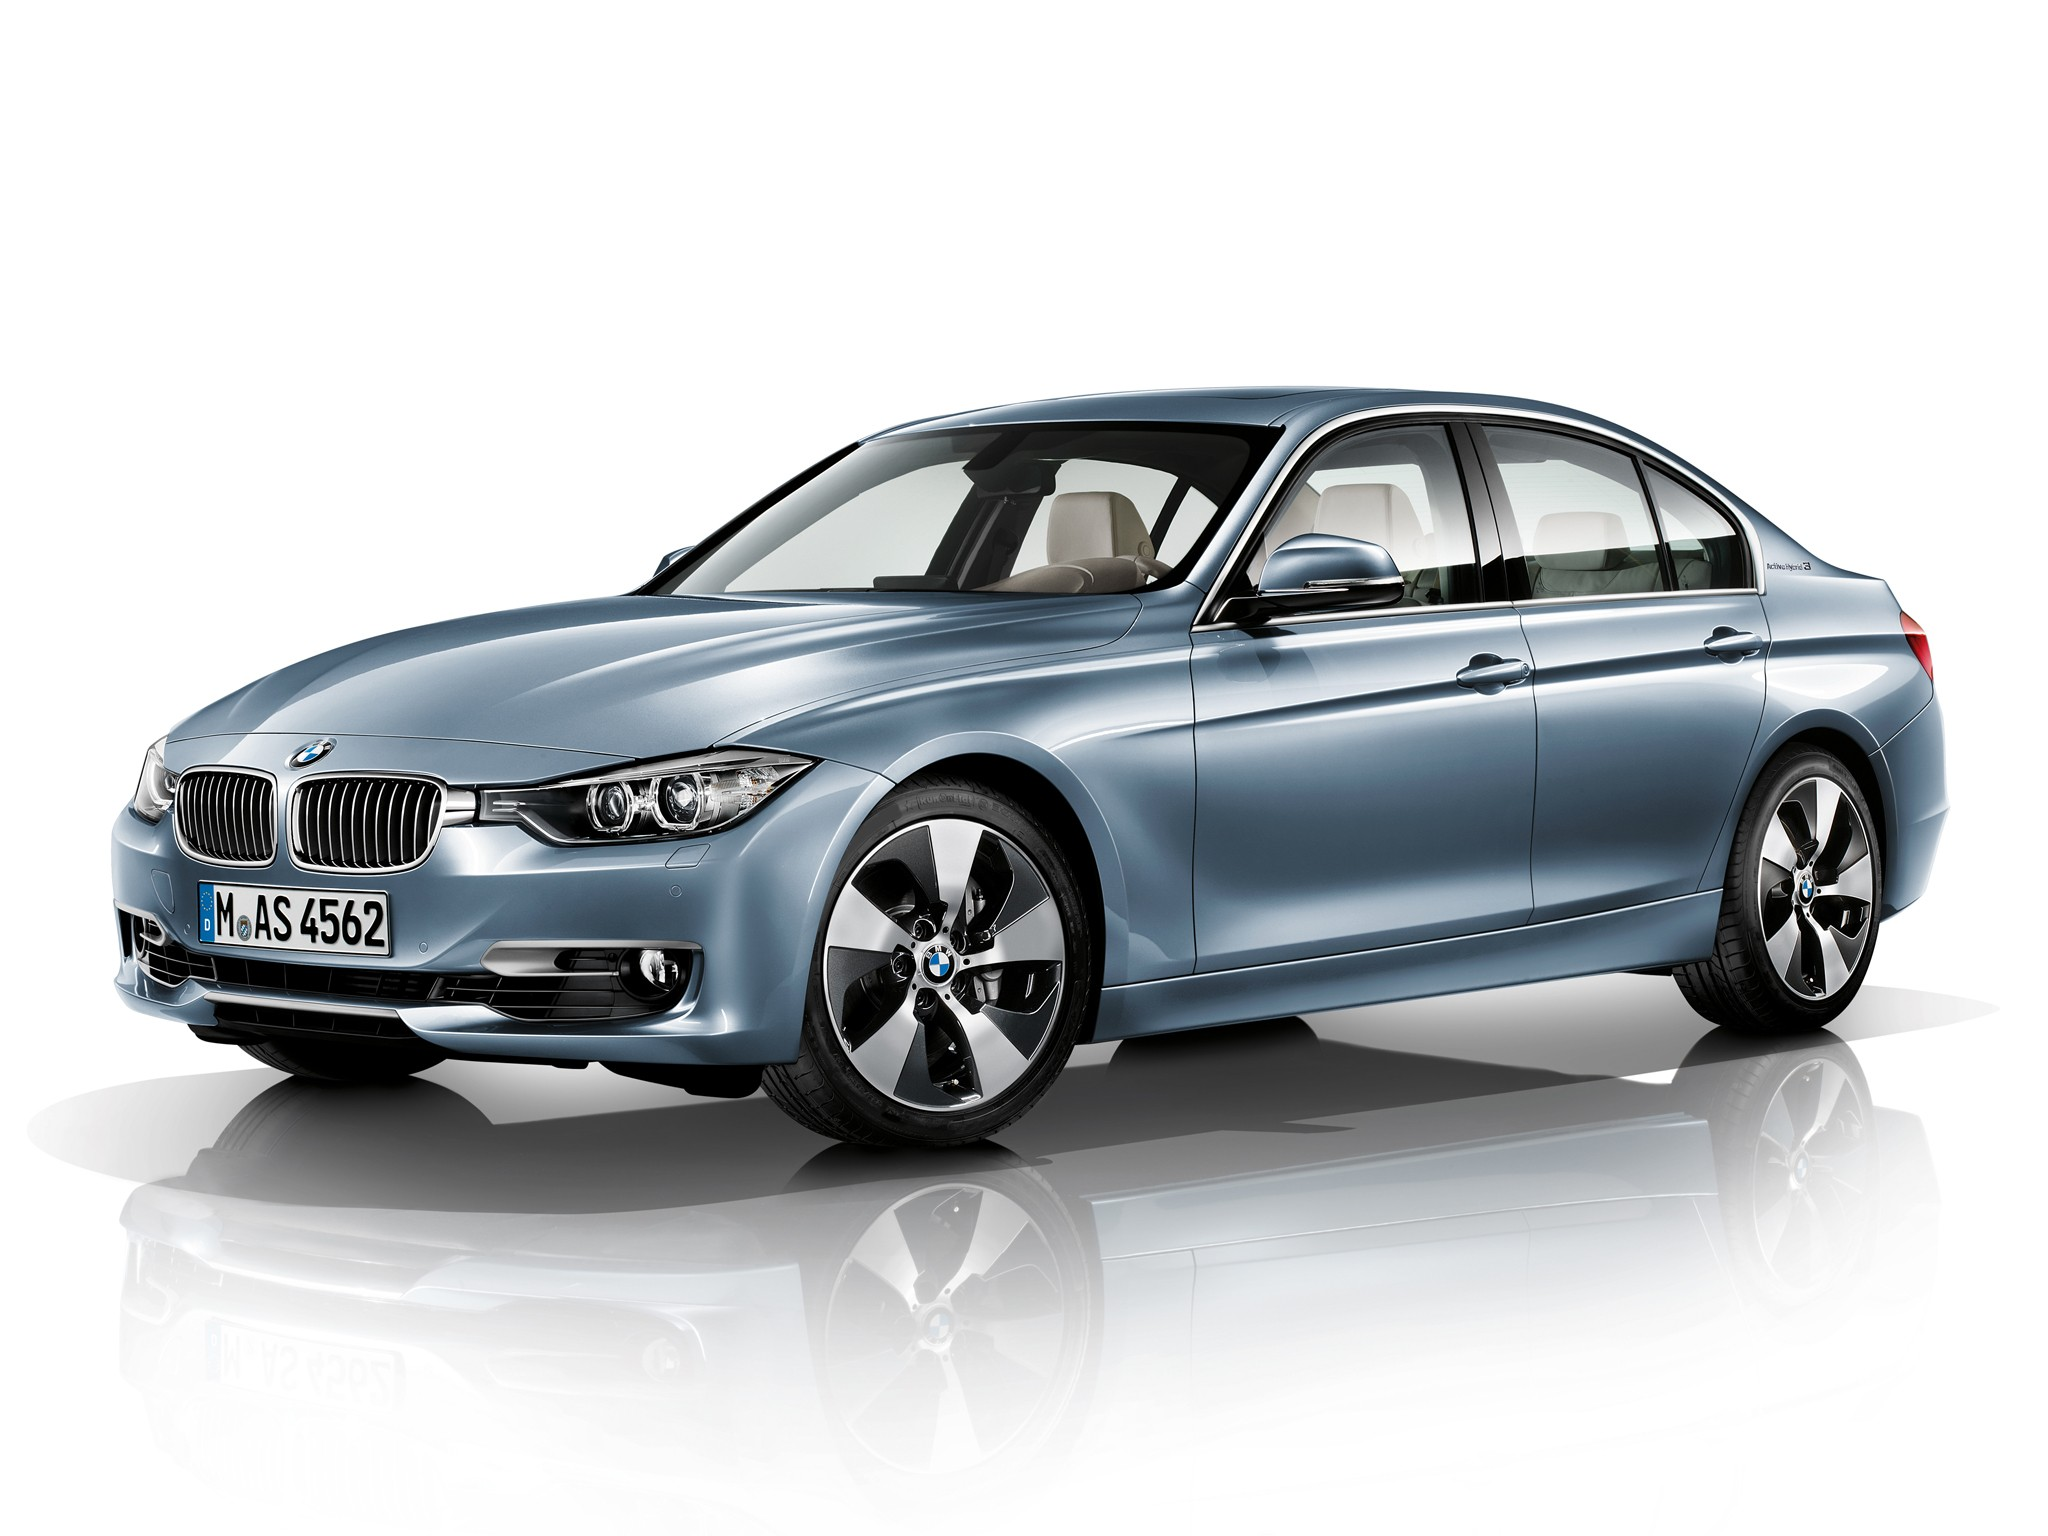 bmw 3 series f30 specs photos 2012 2013 2014 2015 2016 autoevolution. Black Bedroom Furniture Sets. Home Design Ideas